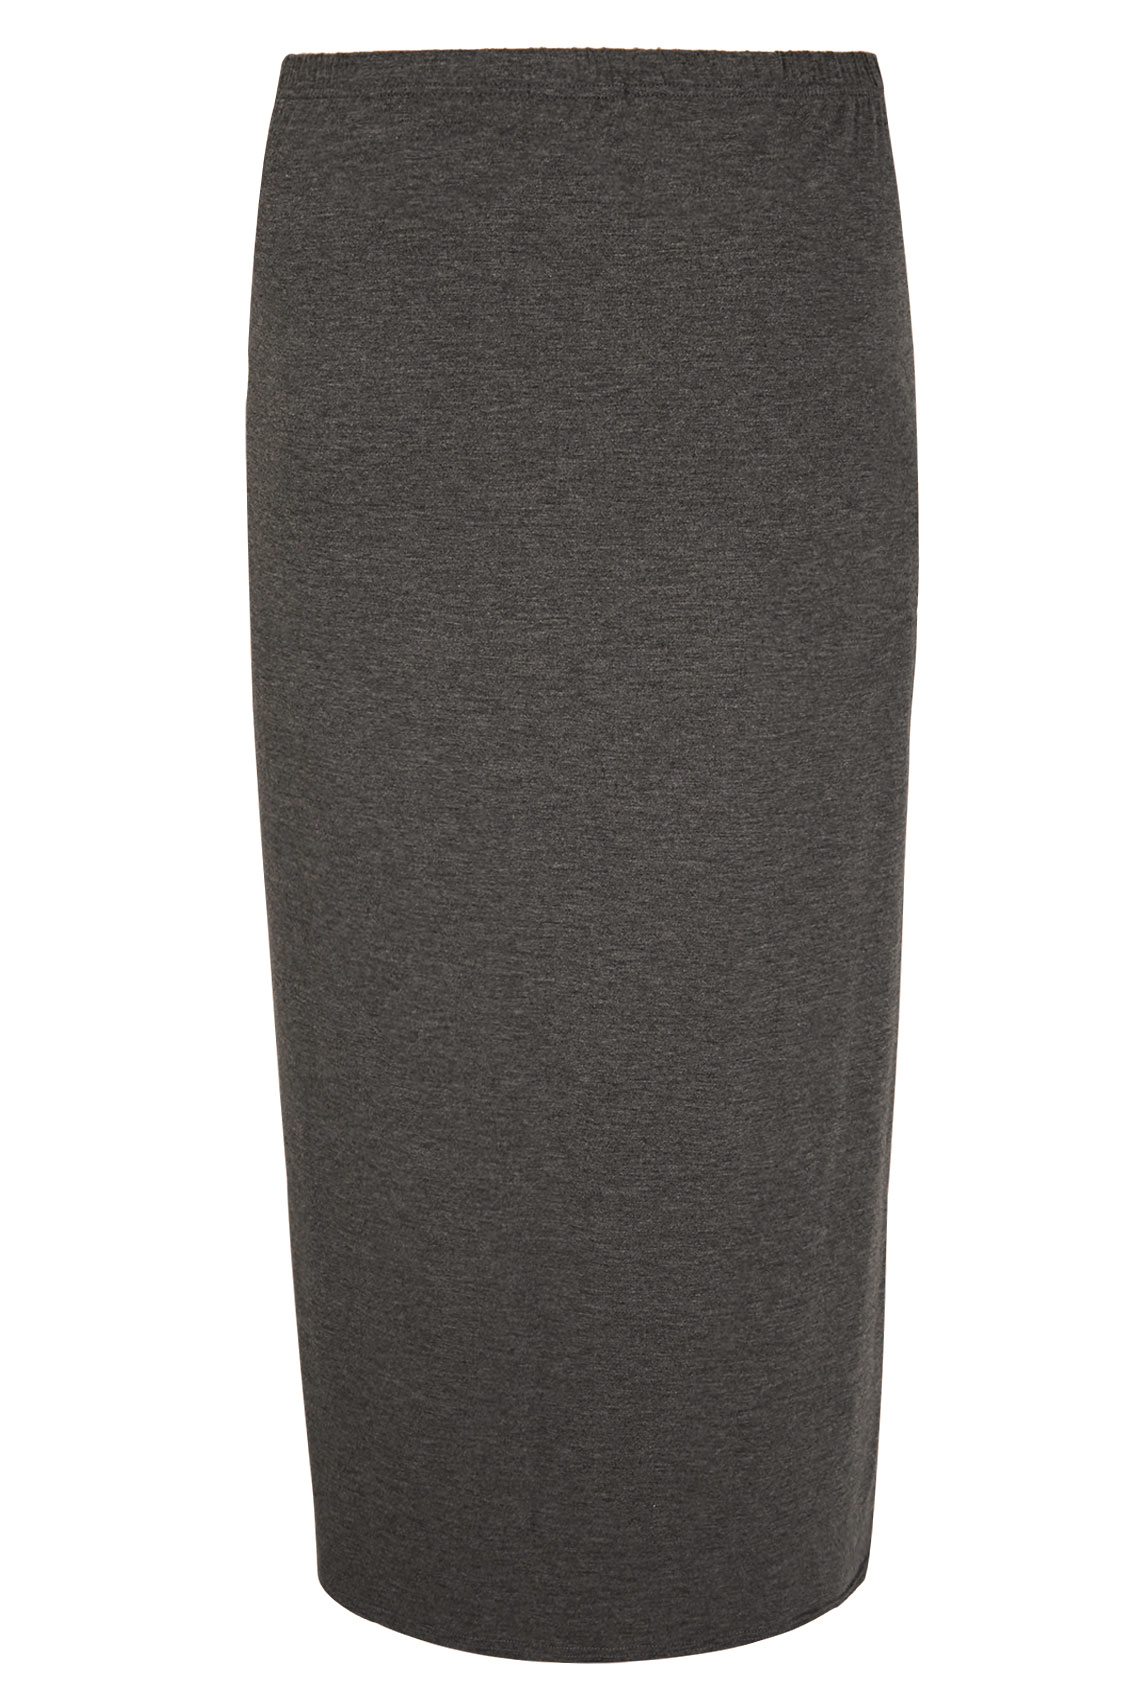 Rooms: BUMP IT UP MATERNITY Grey Tube Maxi Skirt With Comfort